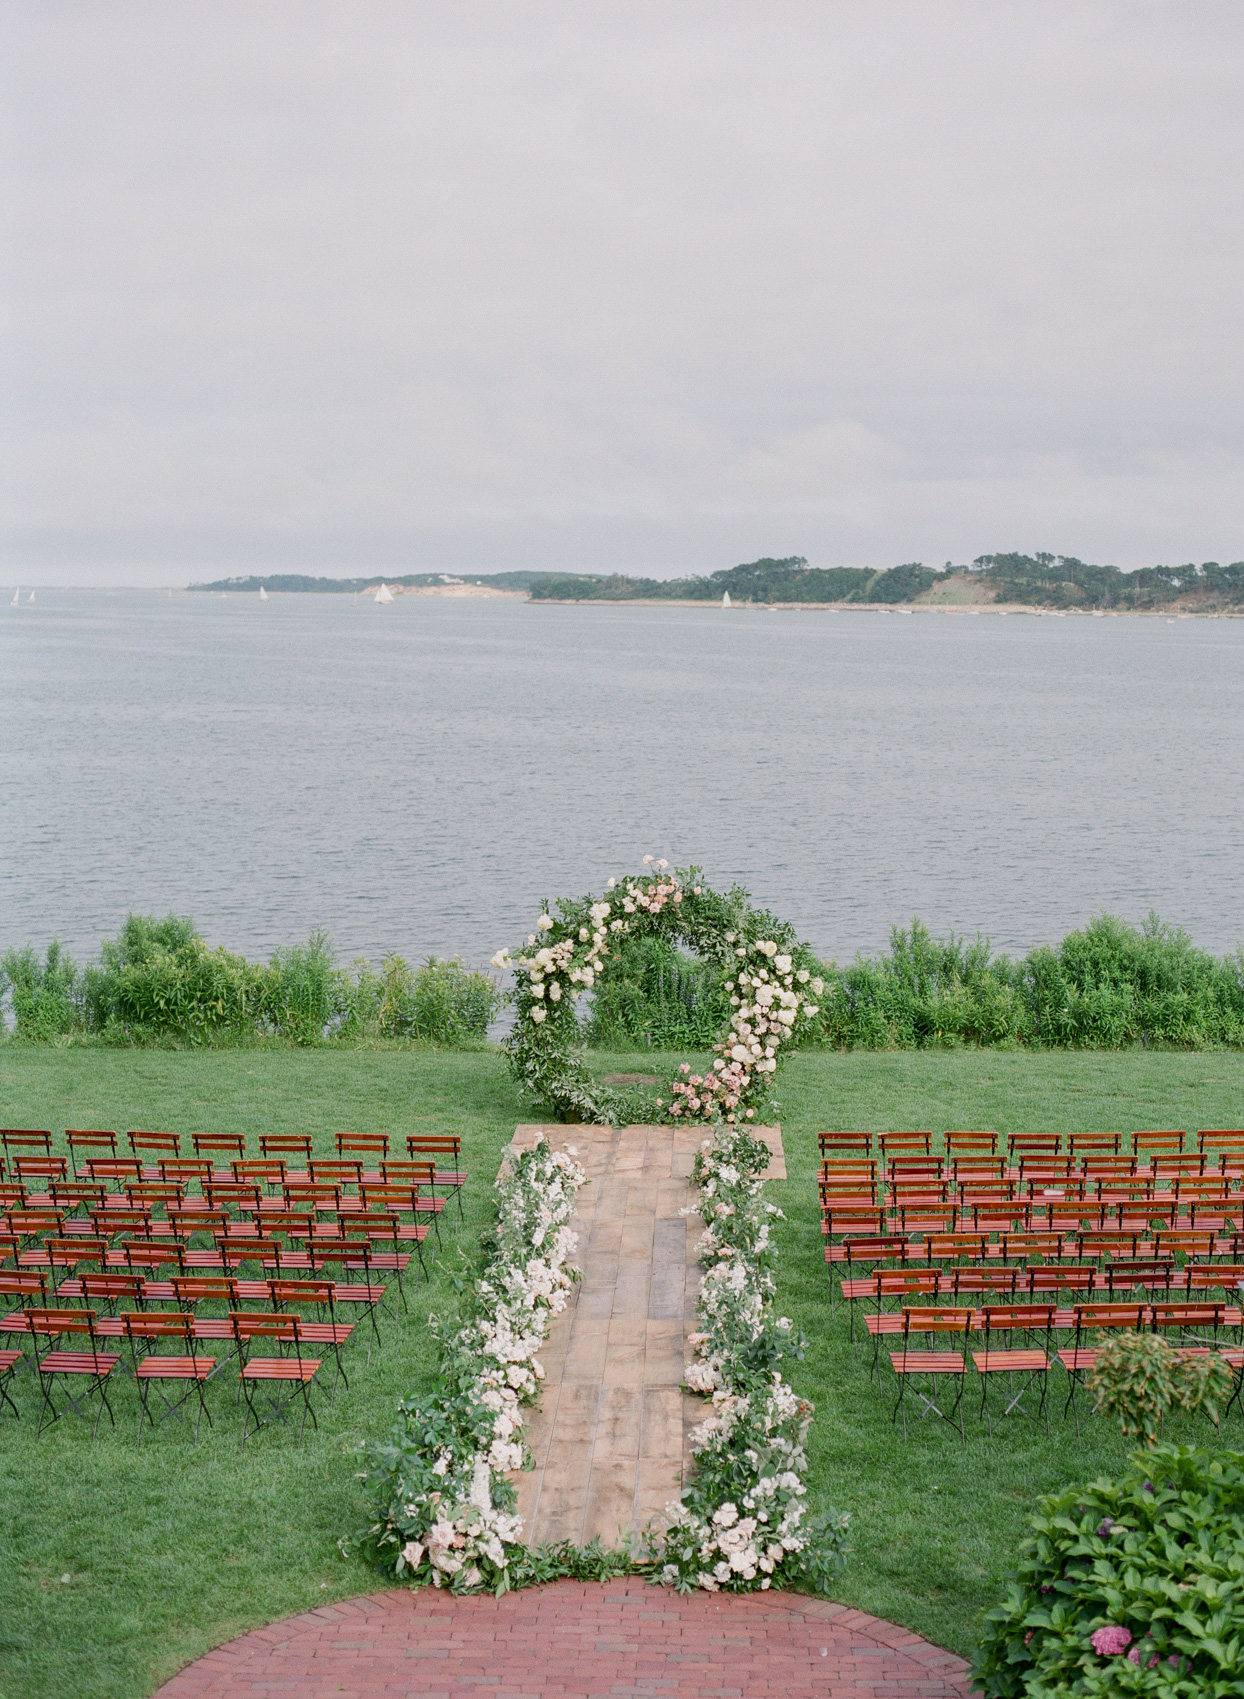 outdoor wedding ceremony spice on grass by water